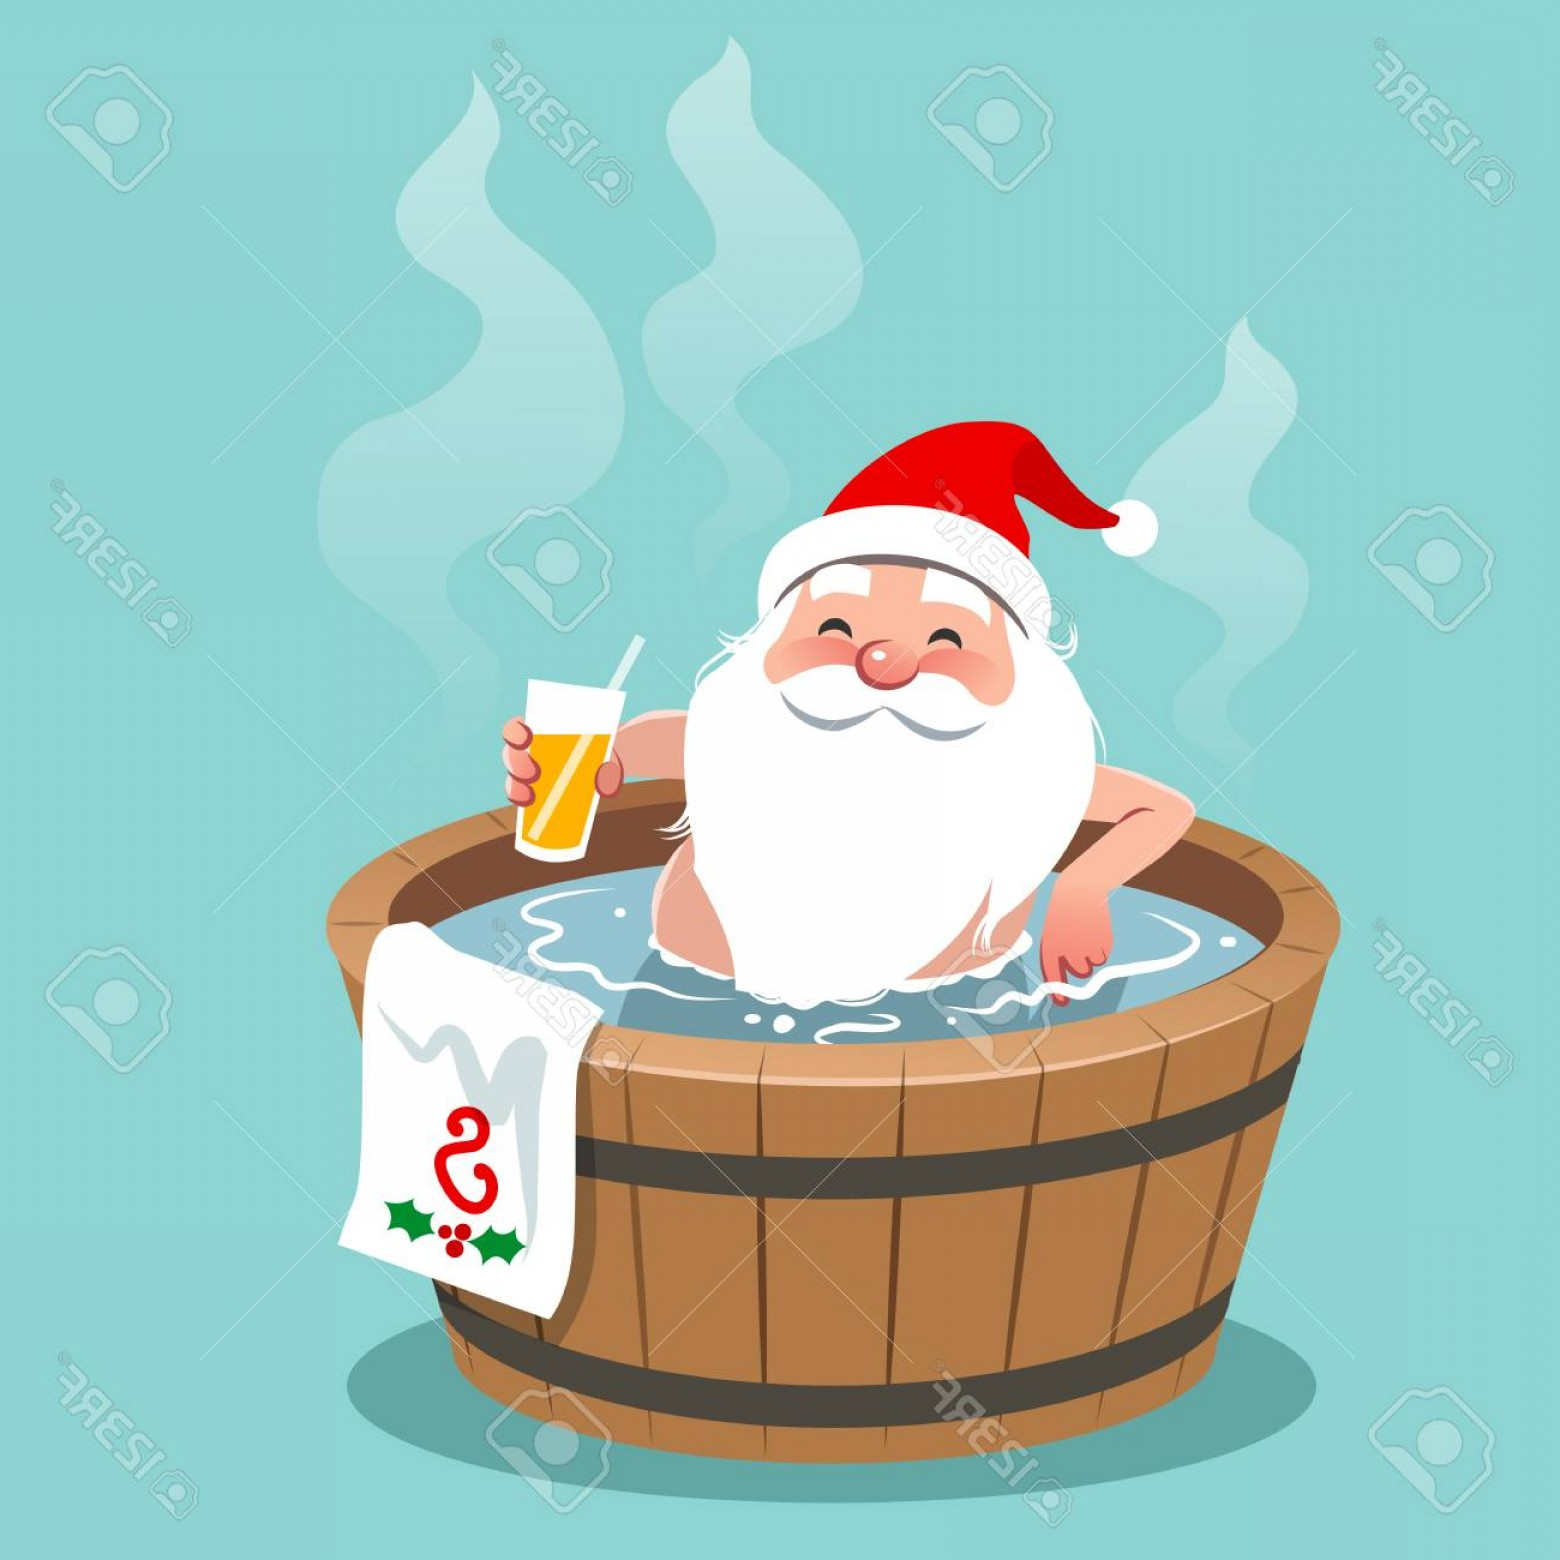 Vector Relaxing Hot Tub: Photostock Vector Vector Cartoon Illustration Of Santa Claus Sitting In A Wooden Barrel Hot Tub Holding Glass Of Orang